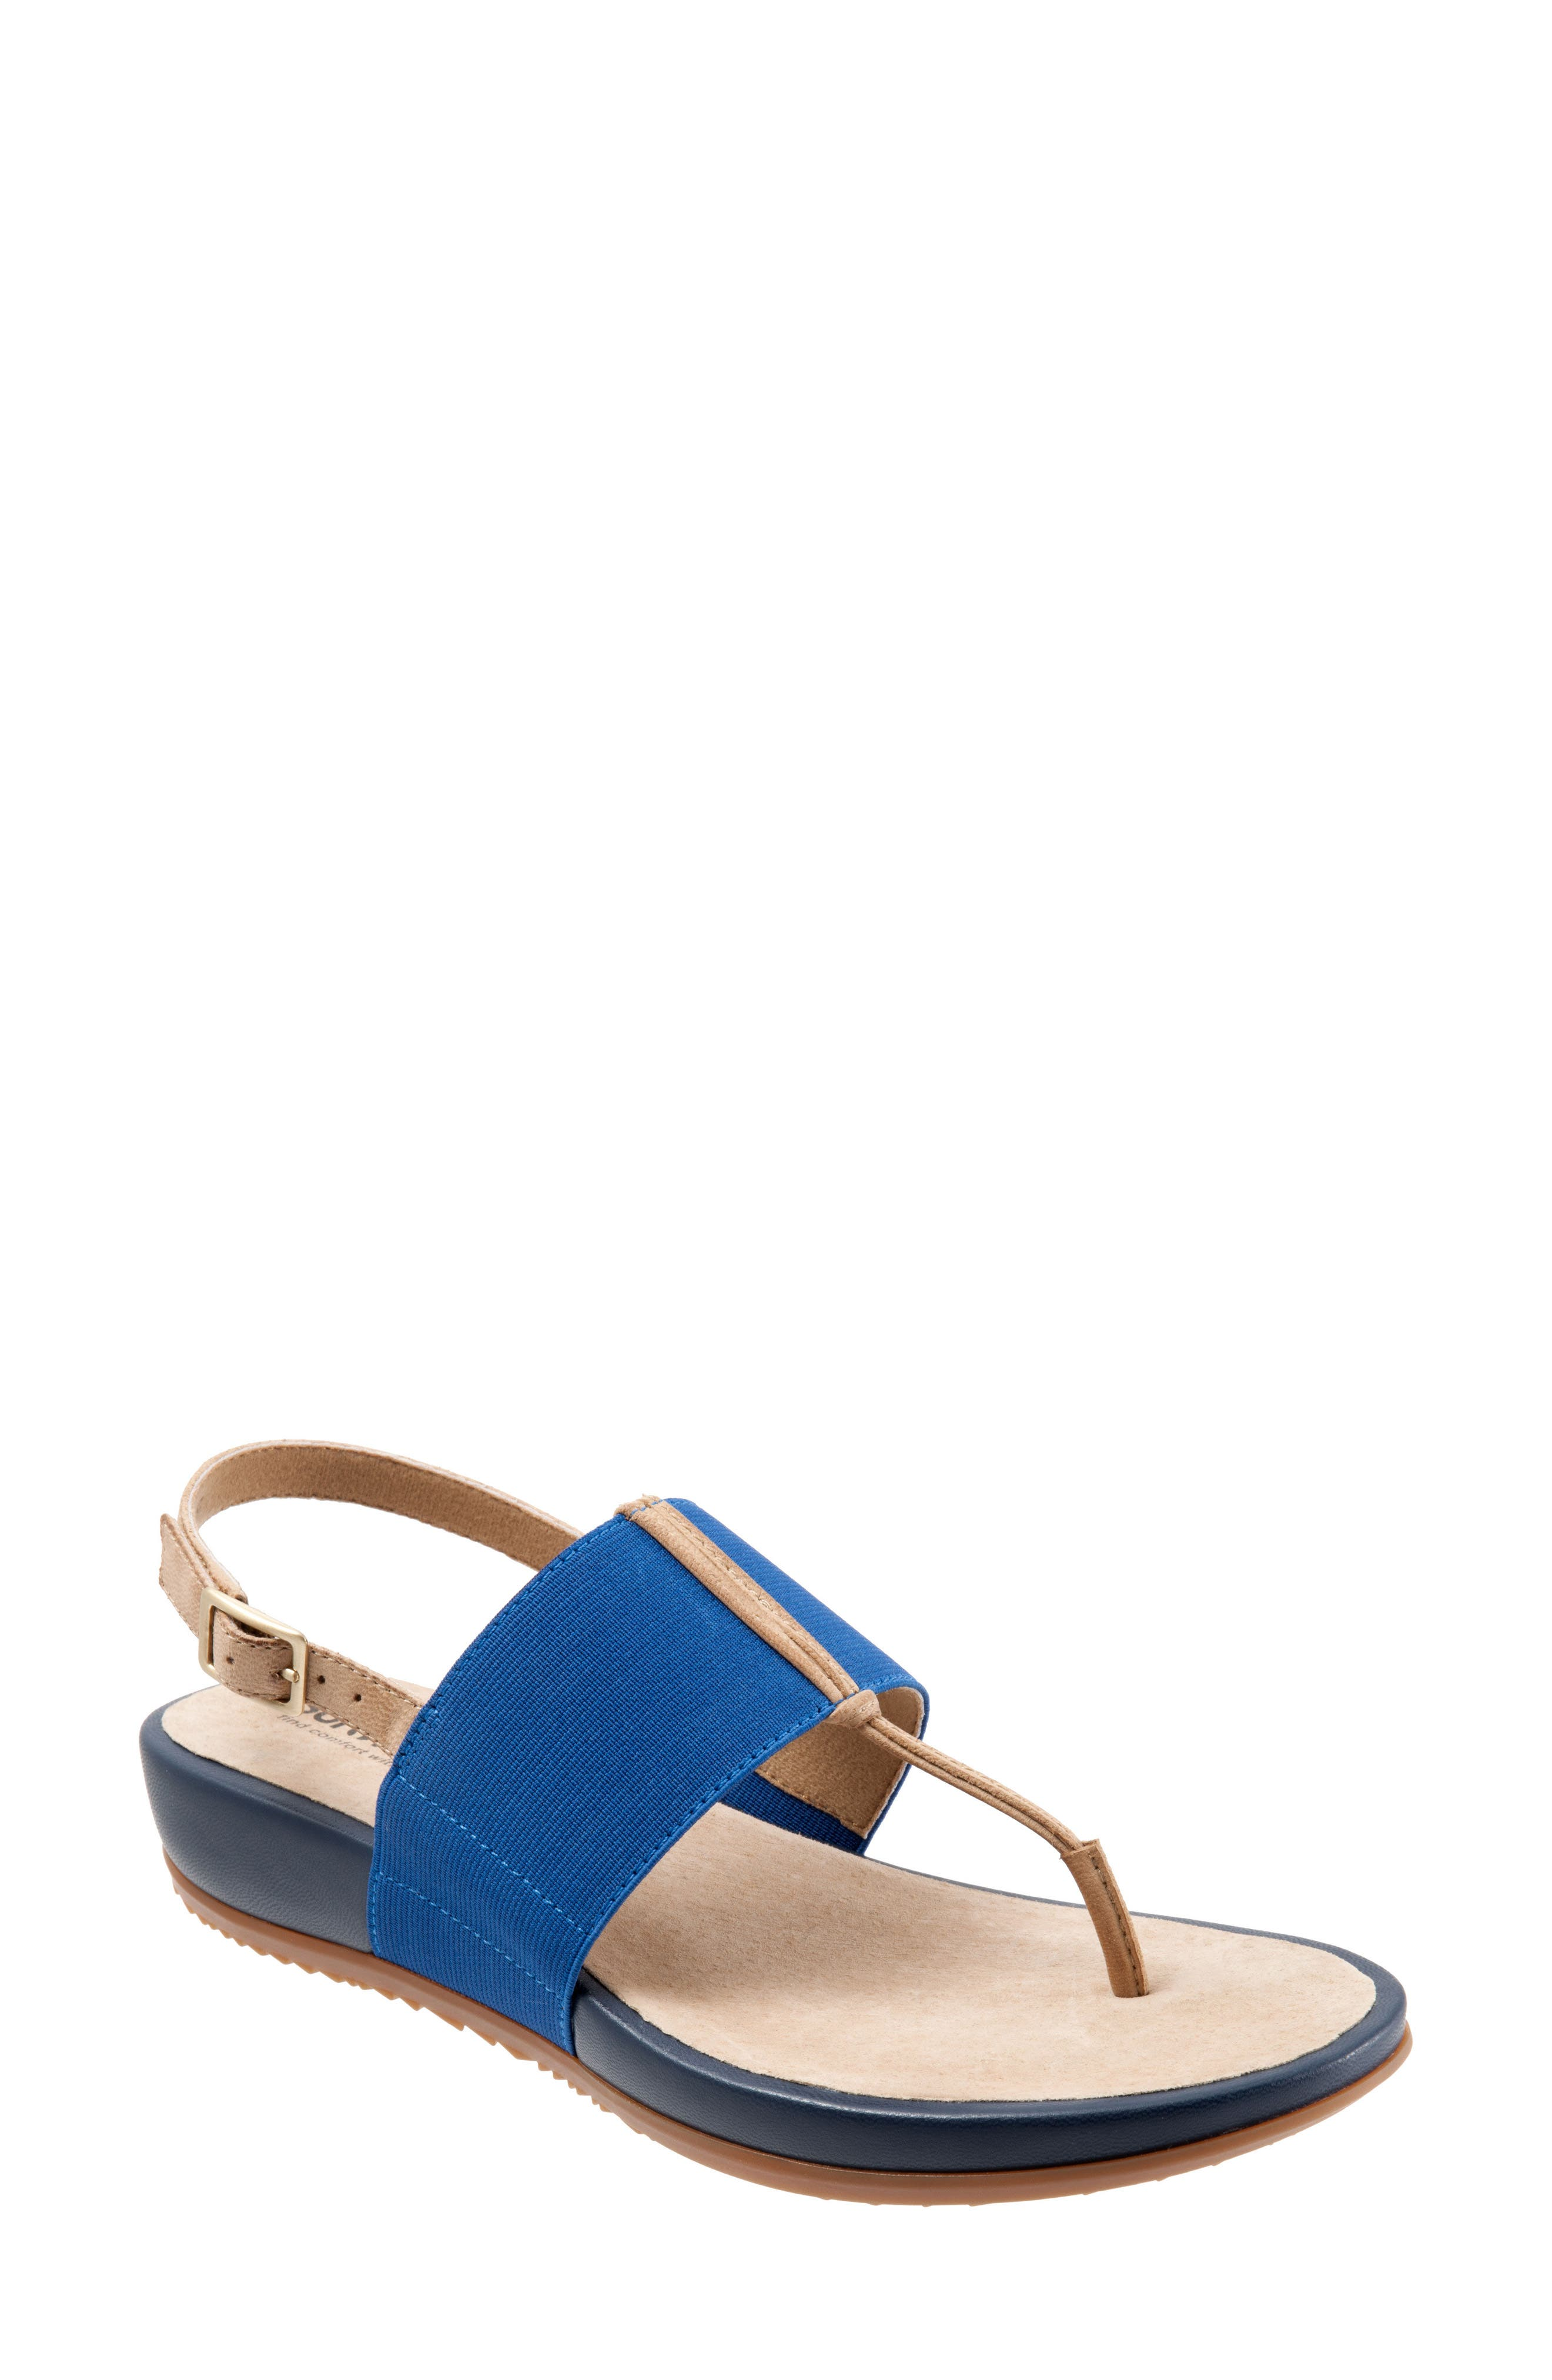 Daytona Sandal,                         Main,                         color, Navy/ Tan Leather